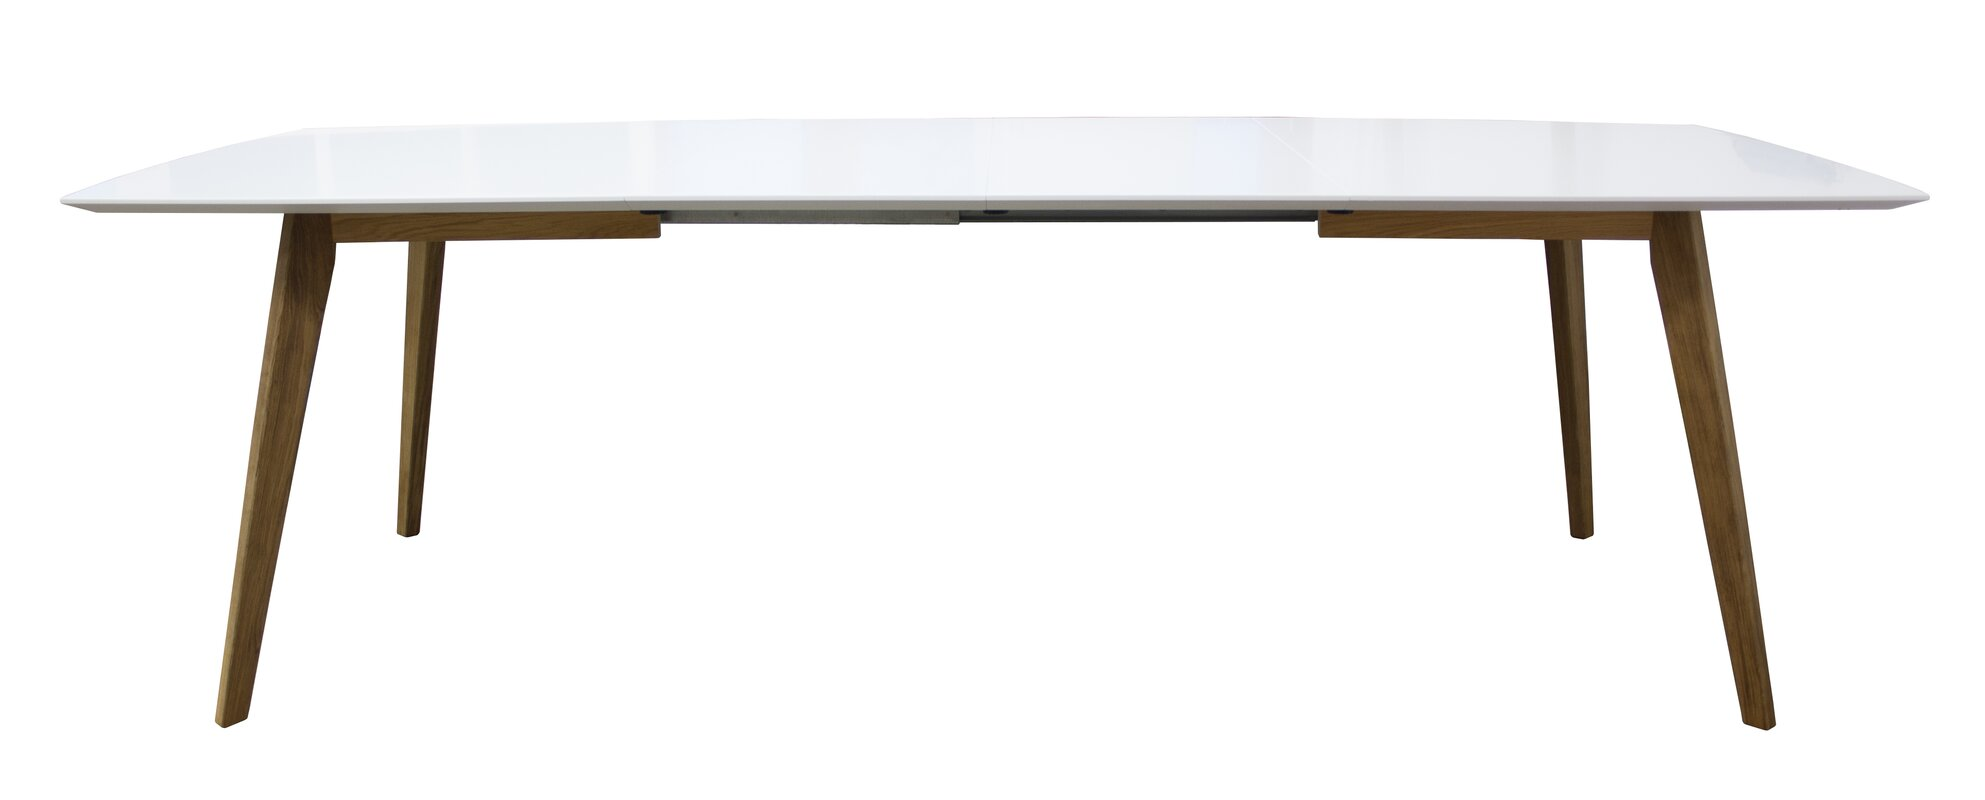 Bess Dining Table Extension Leaf